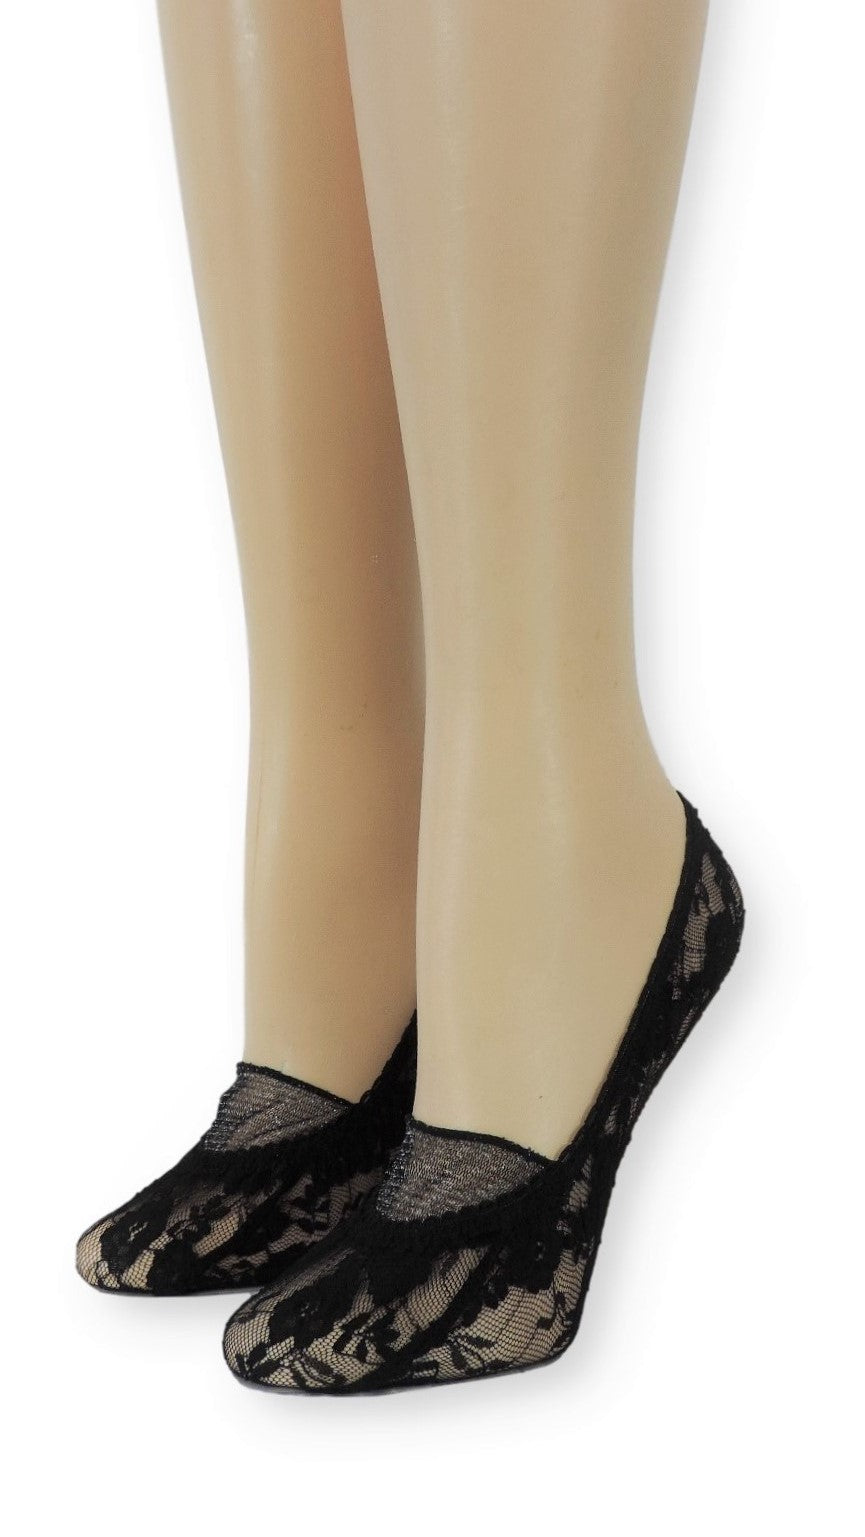 Obsidian Ankle Mesh Socks with Closed lace - Global Trendz Fashion®